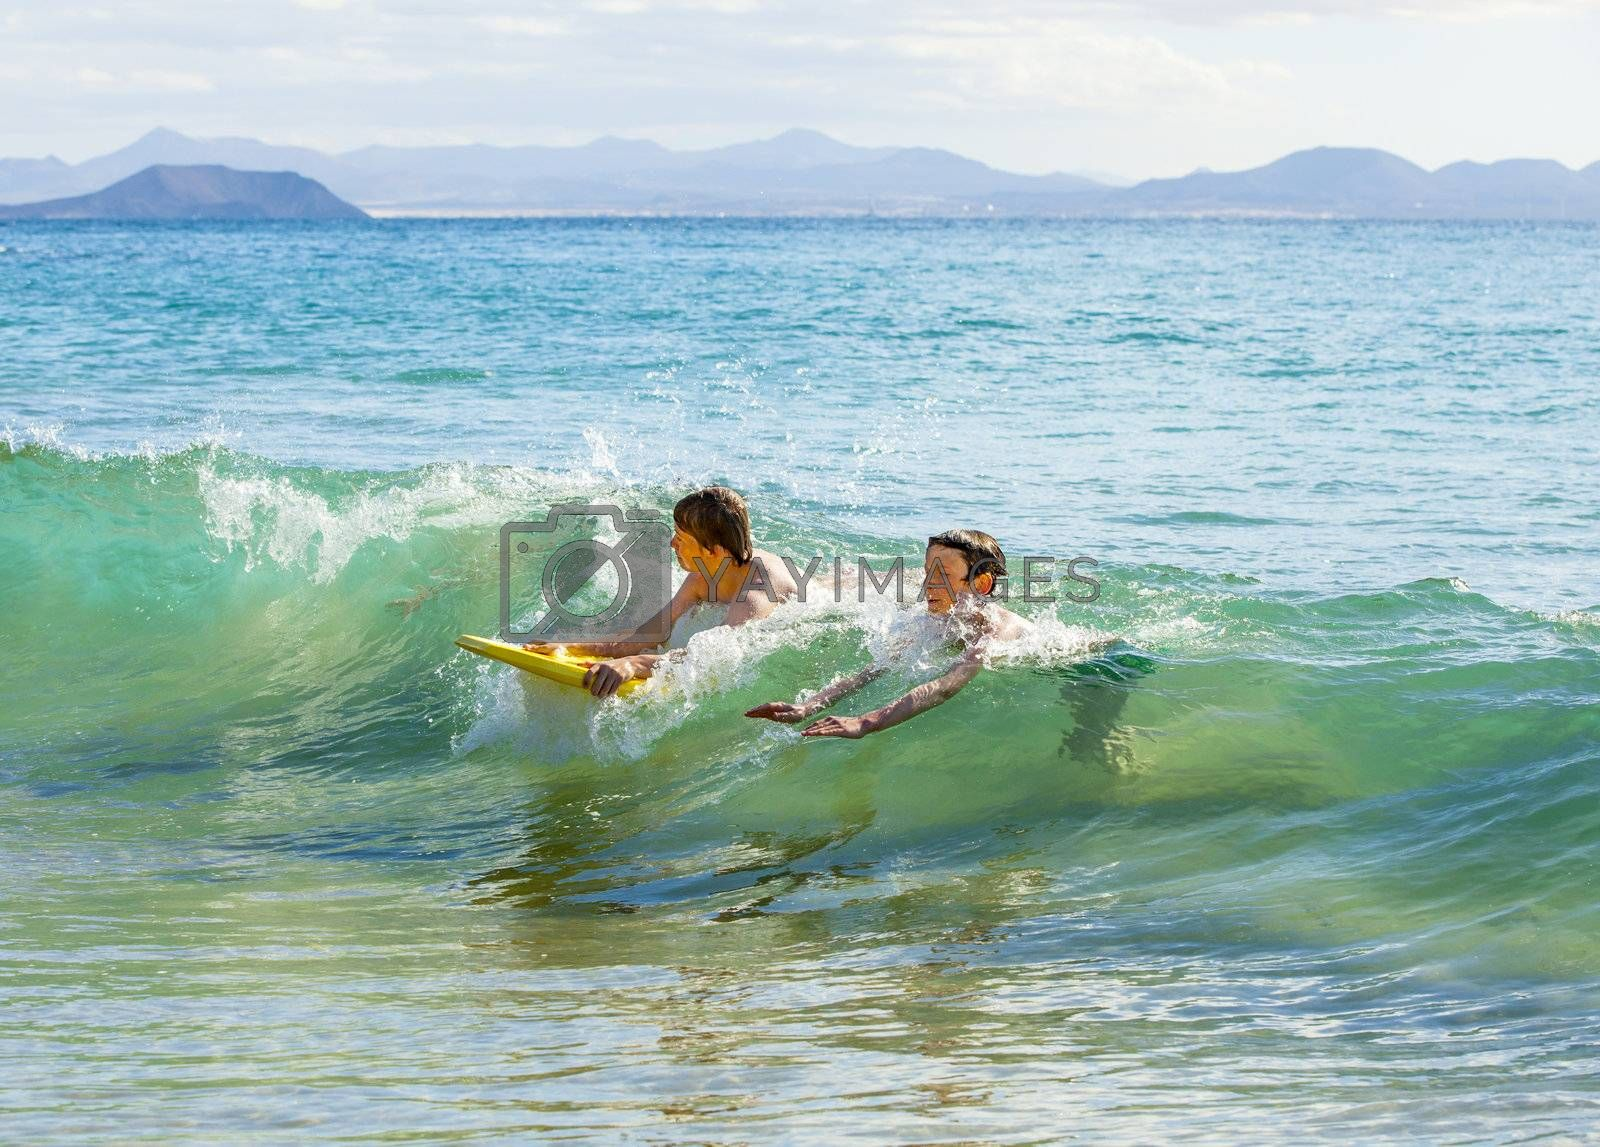 boys have fun riding in the waves